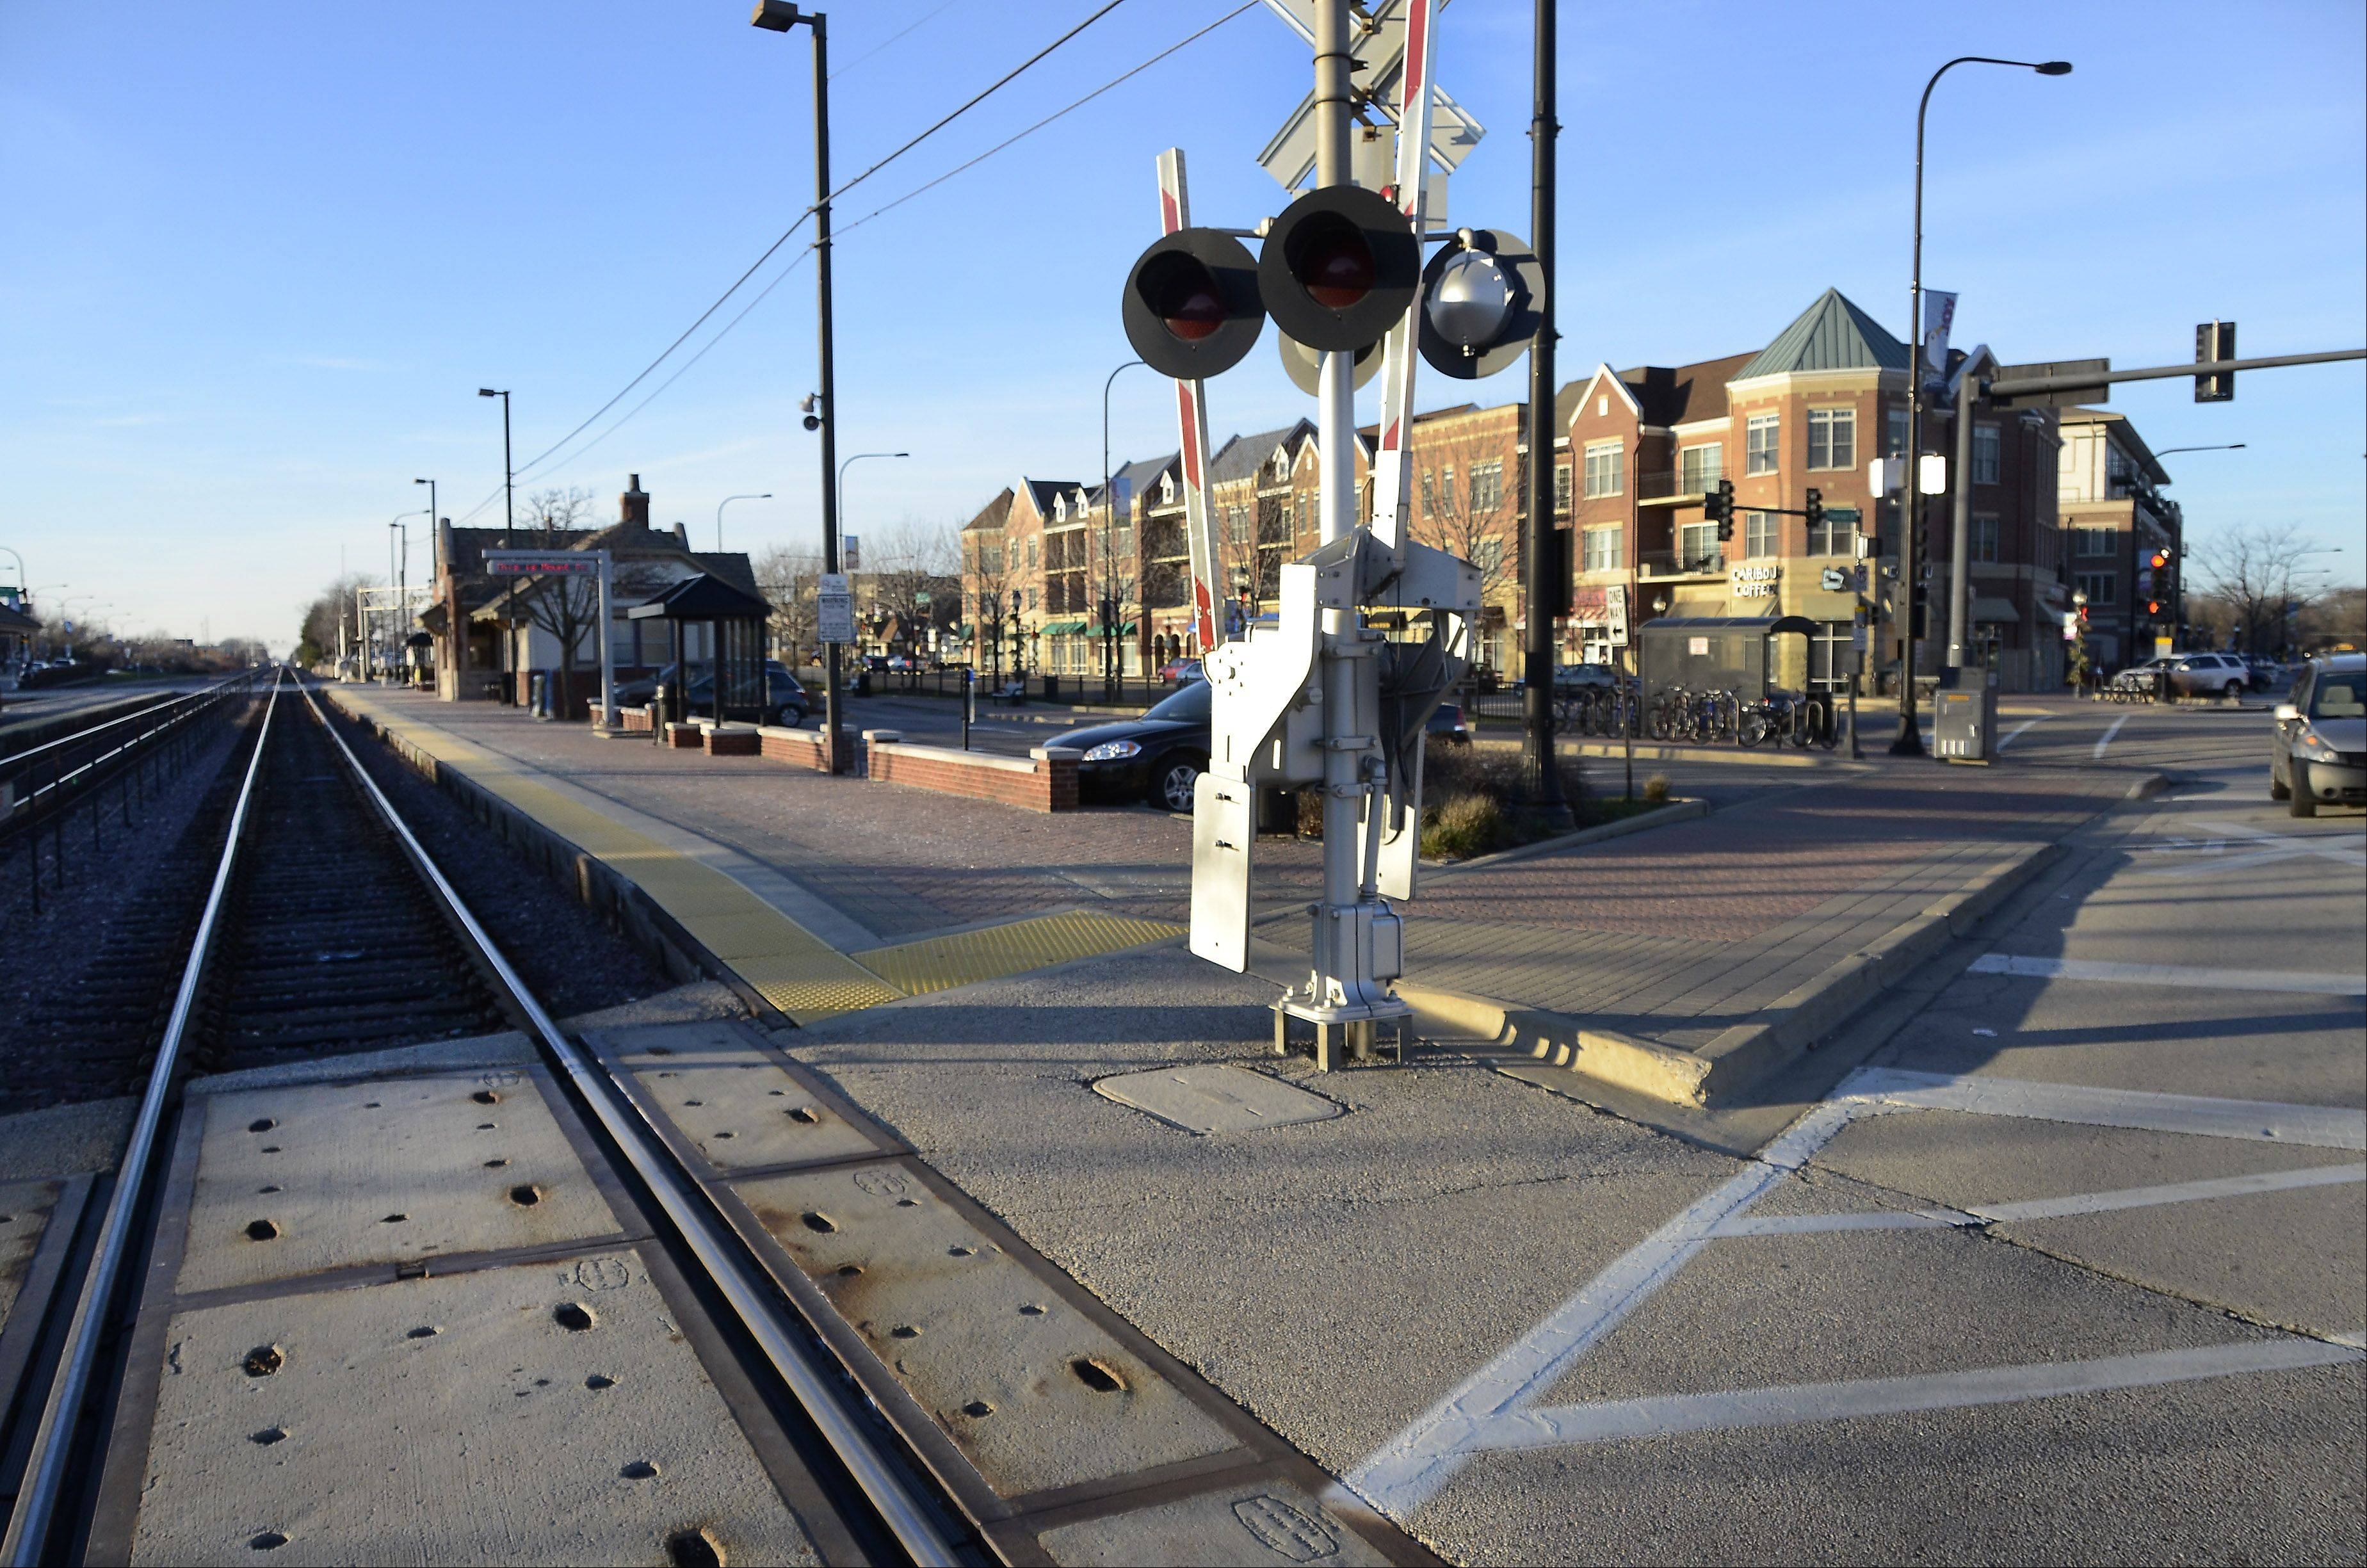 Railway crossings continue to be a hazard for pedestrians and cars ignoring lowered gates and bells.